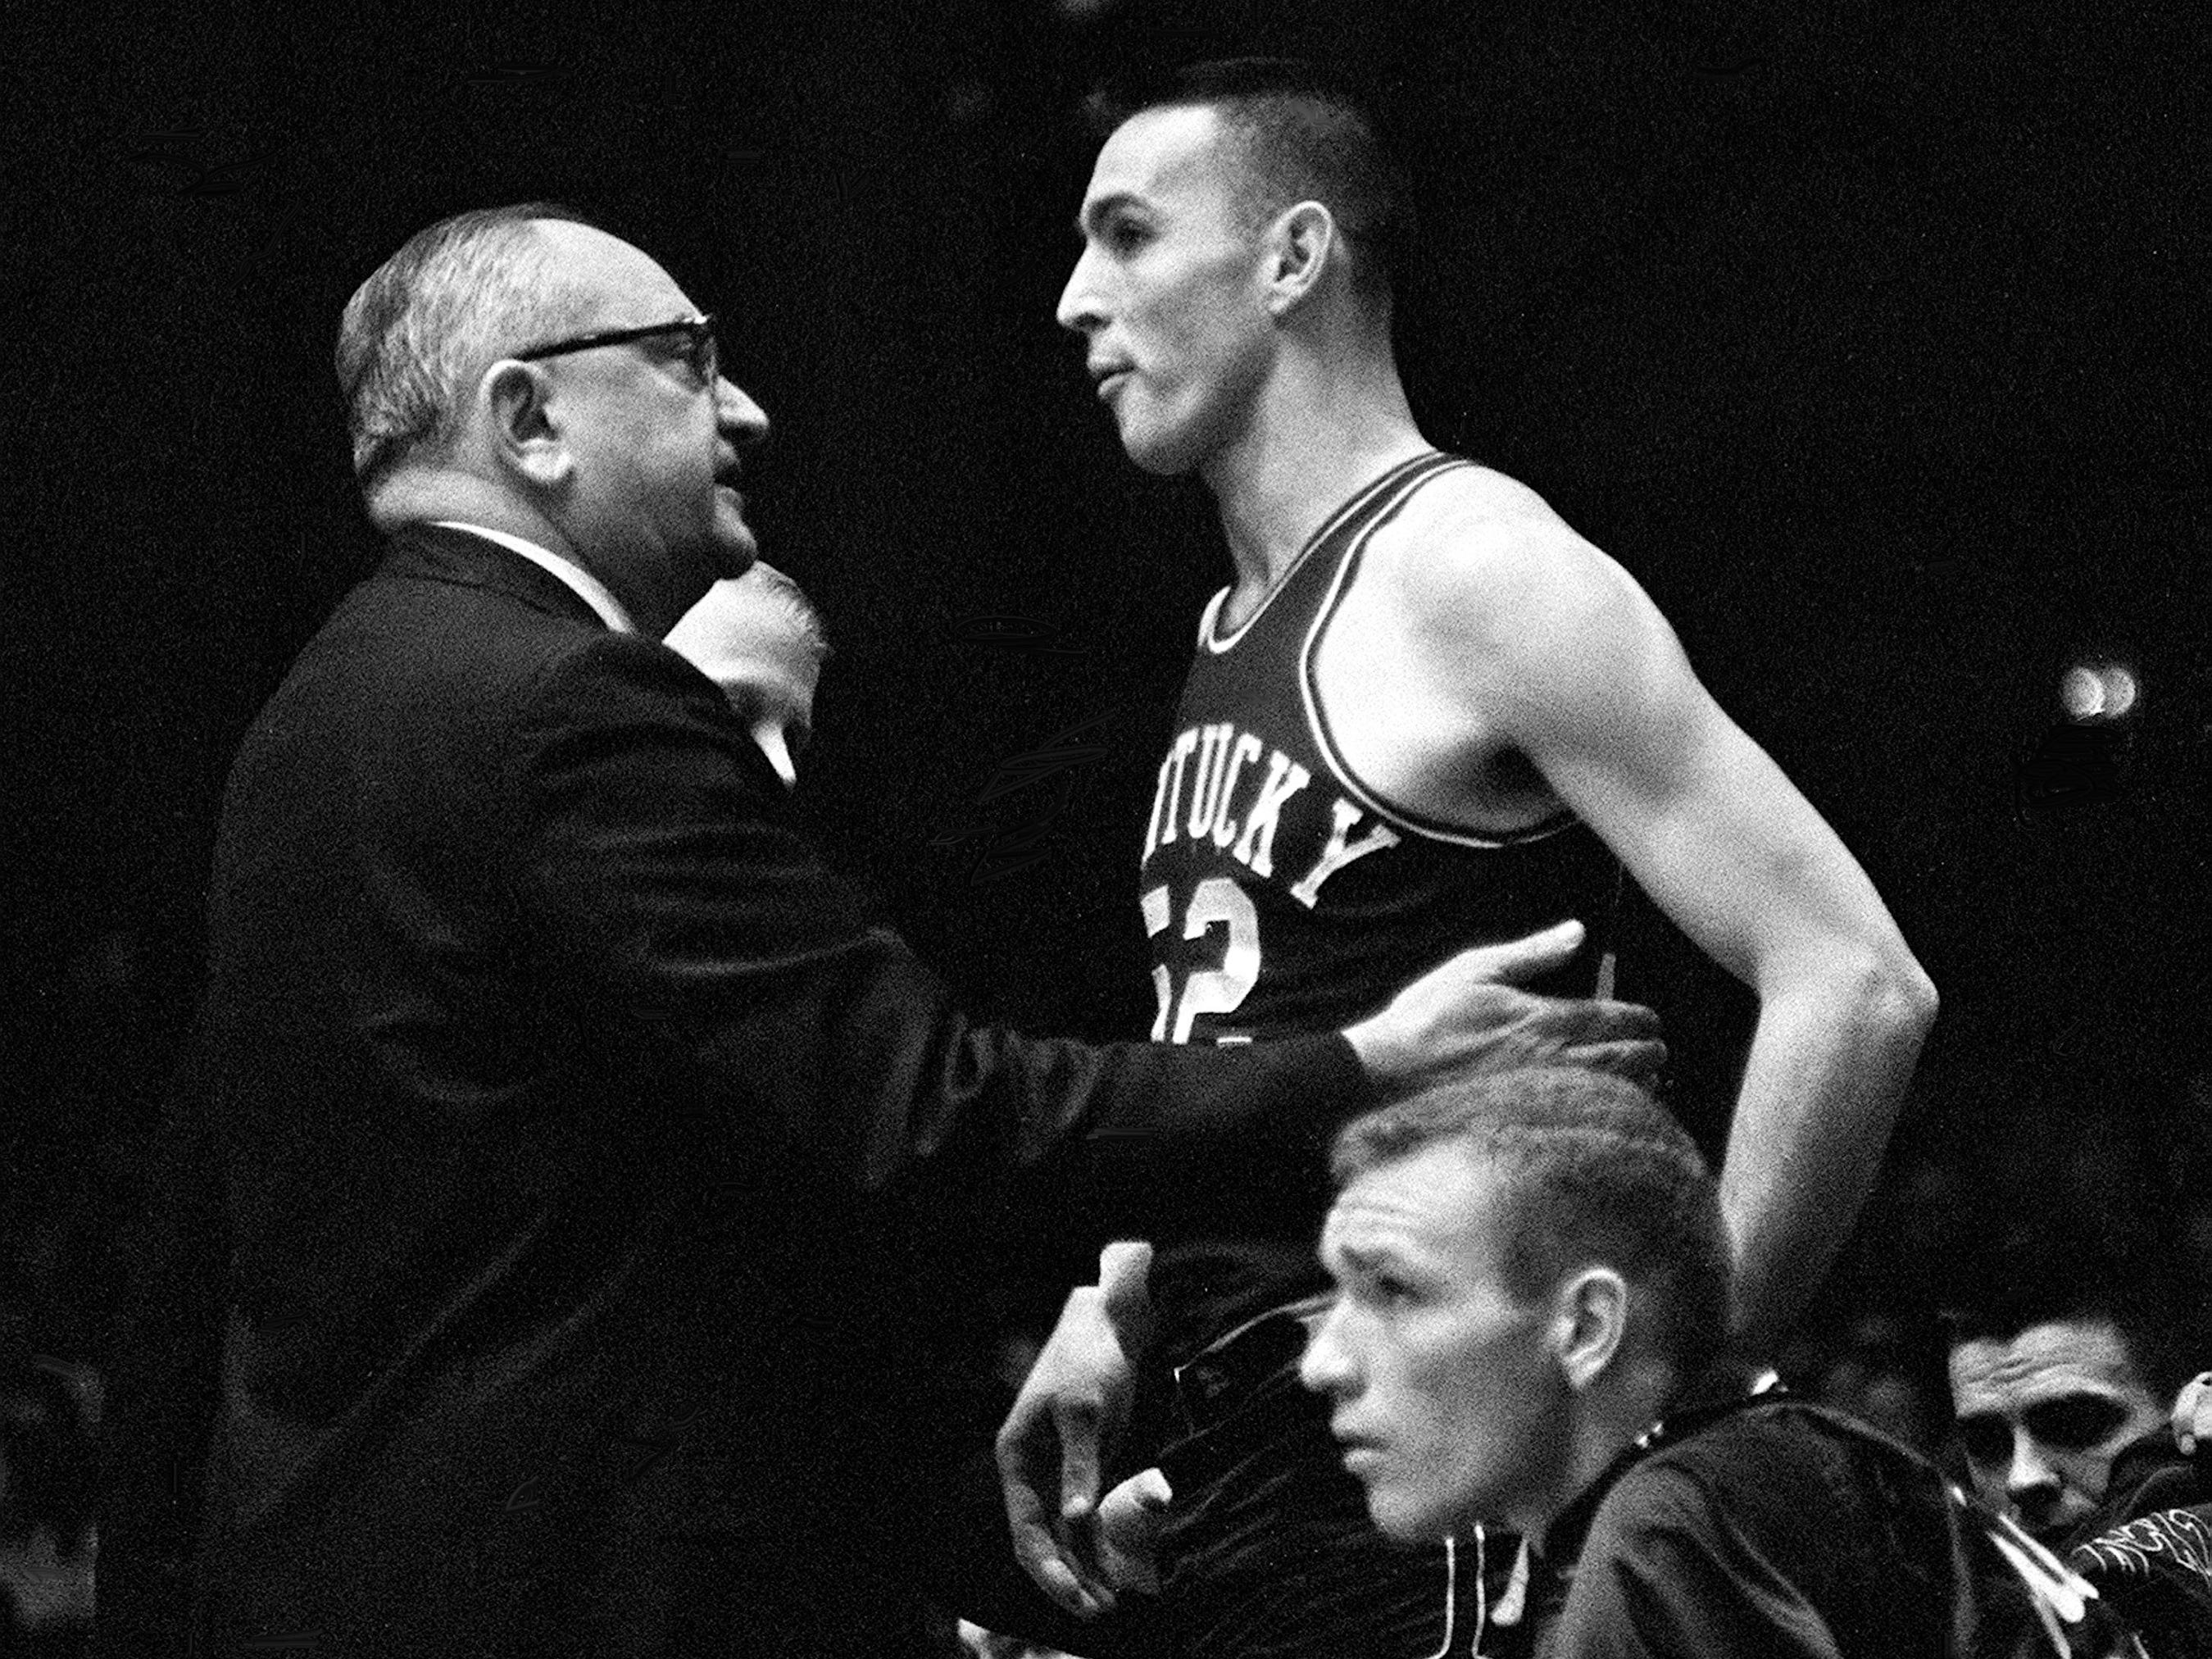 Kentucky head coach Adolph Rupp, left, talks with one of his players before sending him into the game against Vanderbilt Jan. 9, 1961. The Wildcats became the Commodores' 11th straight victim, falling 64-62 before 7,324 fans at Memorial Gym.